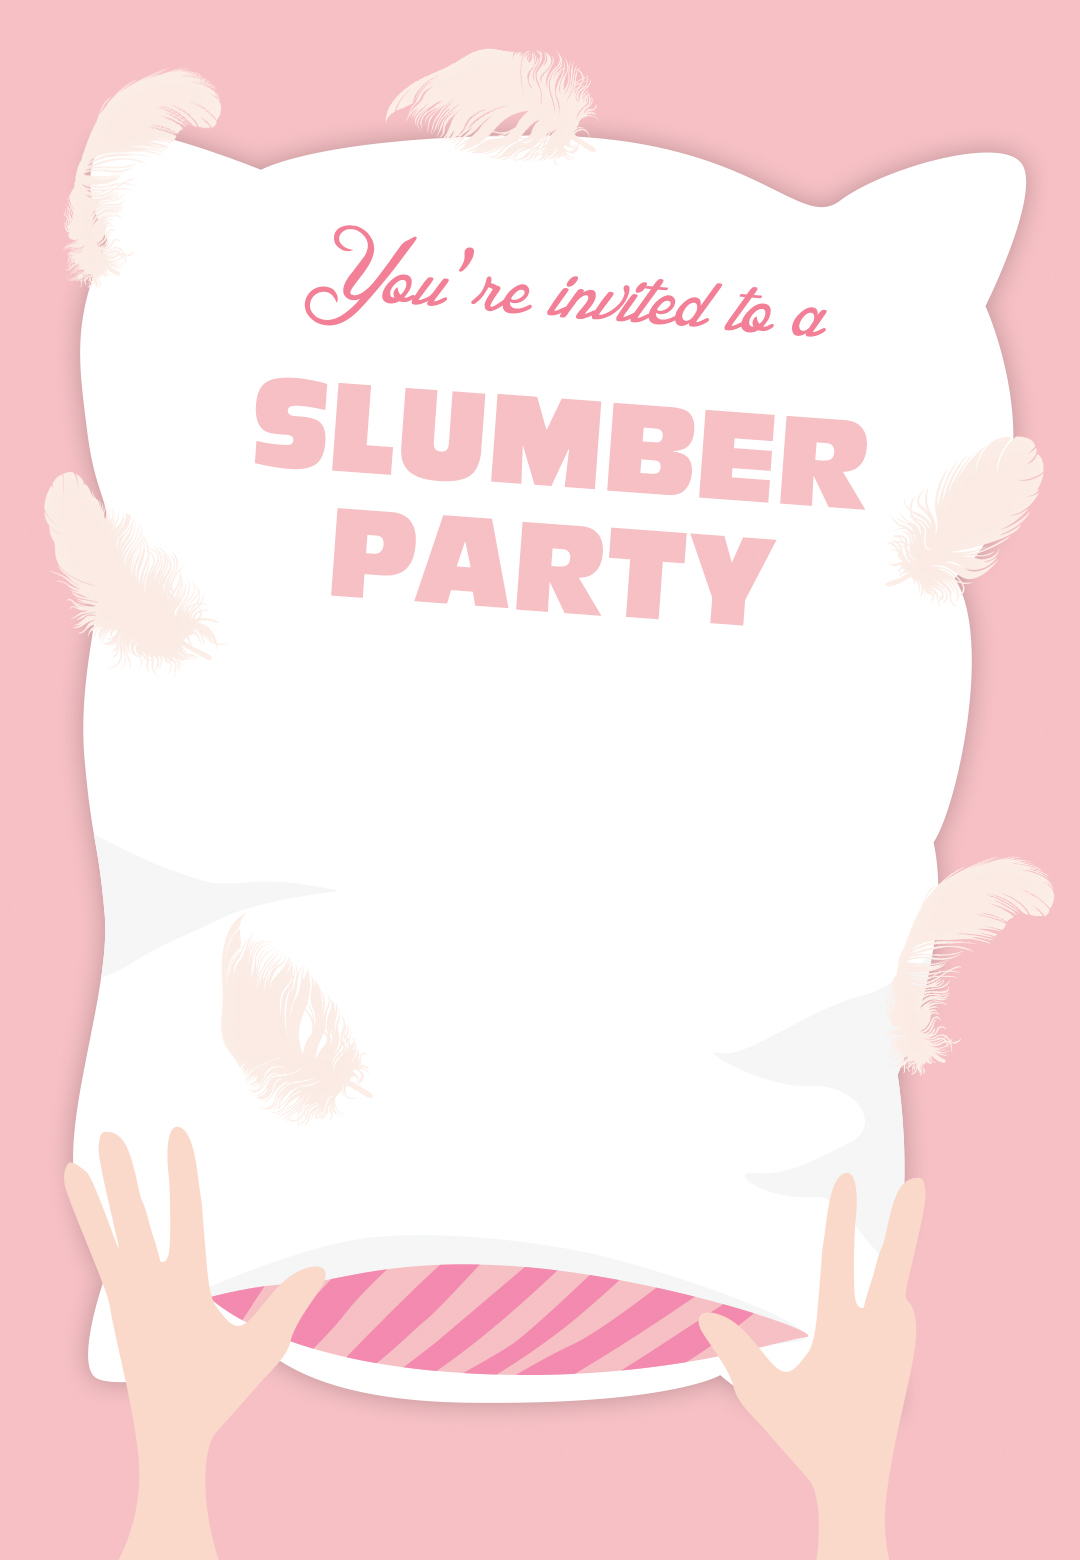 50 beautiful slumber party invitations kitty baby love cute slumber party invitations monicamarmolfo Image collections